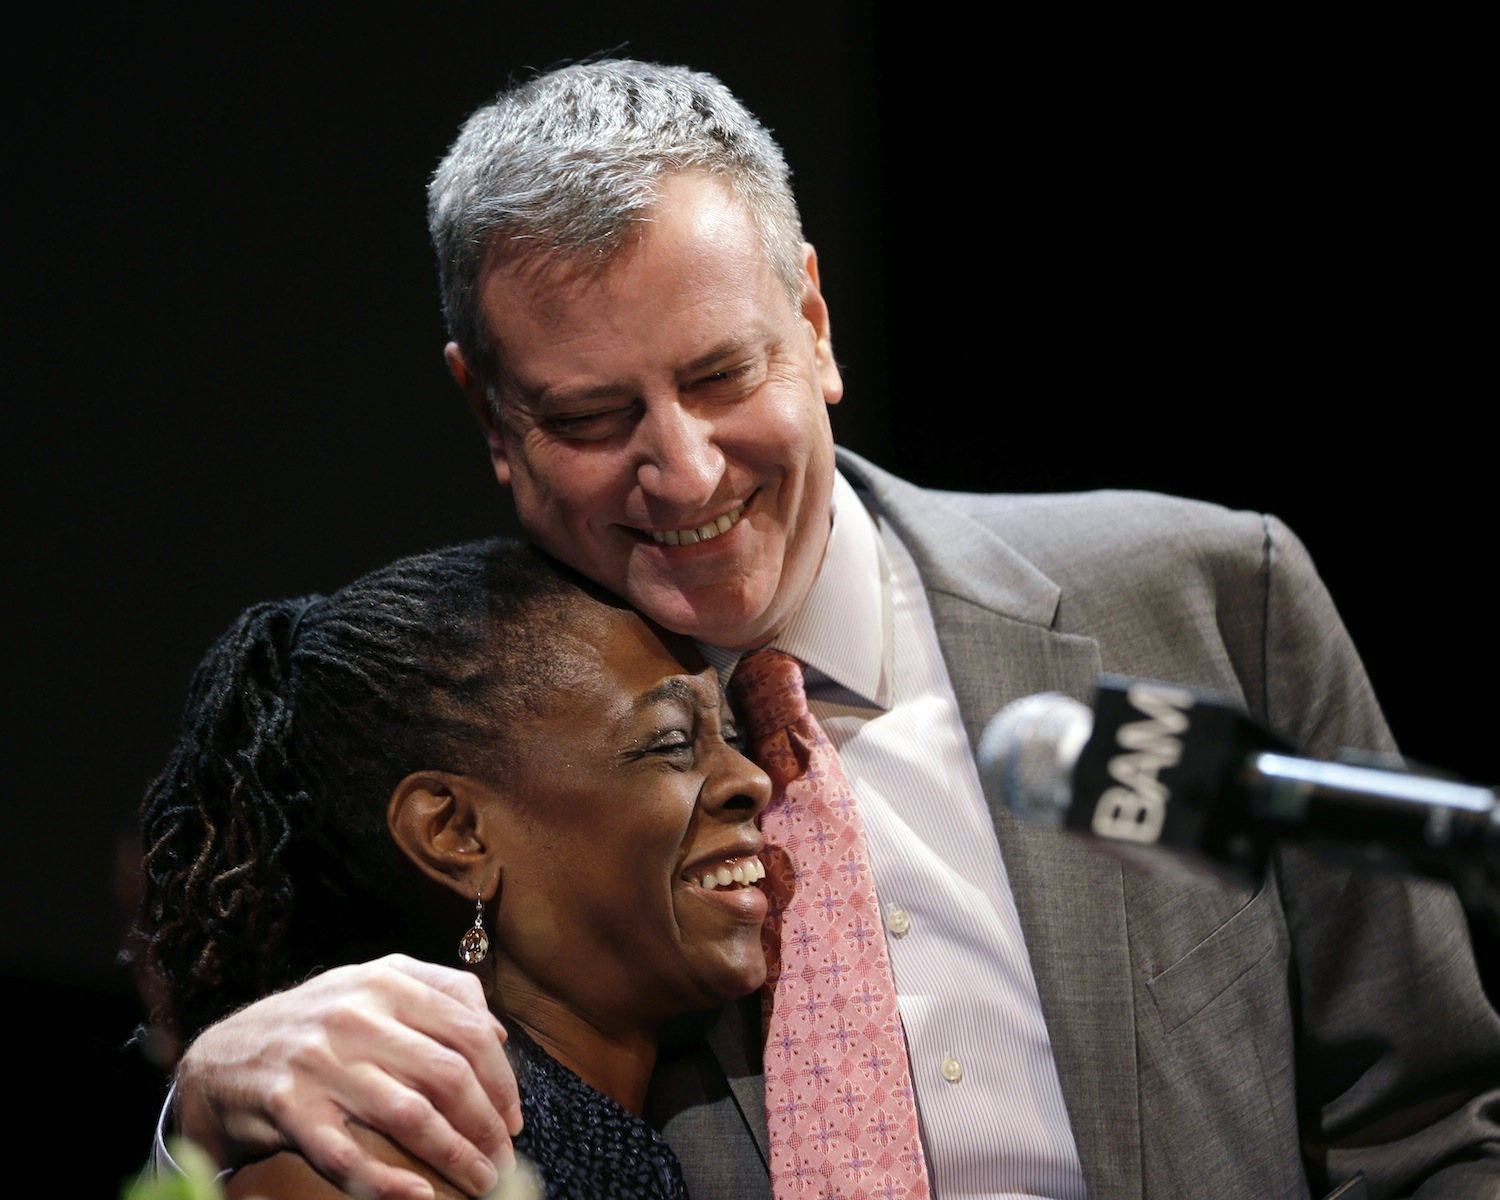 Bill-de-Blasio-and-his-wife-Chirlane-McCray